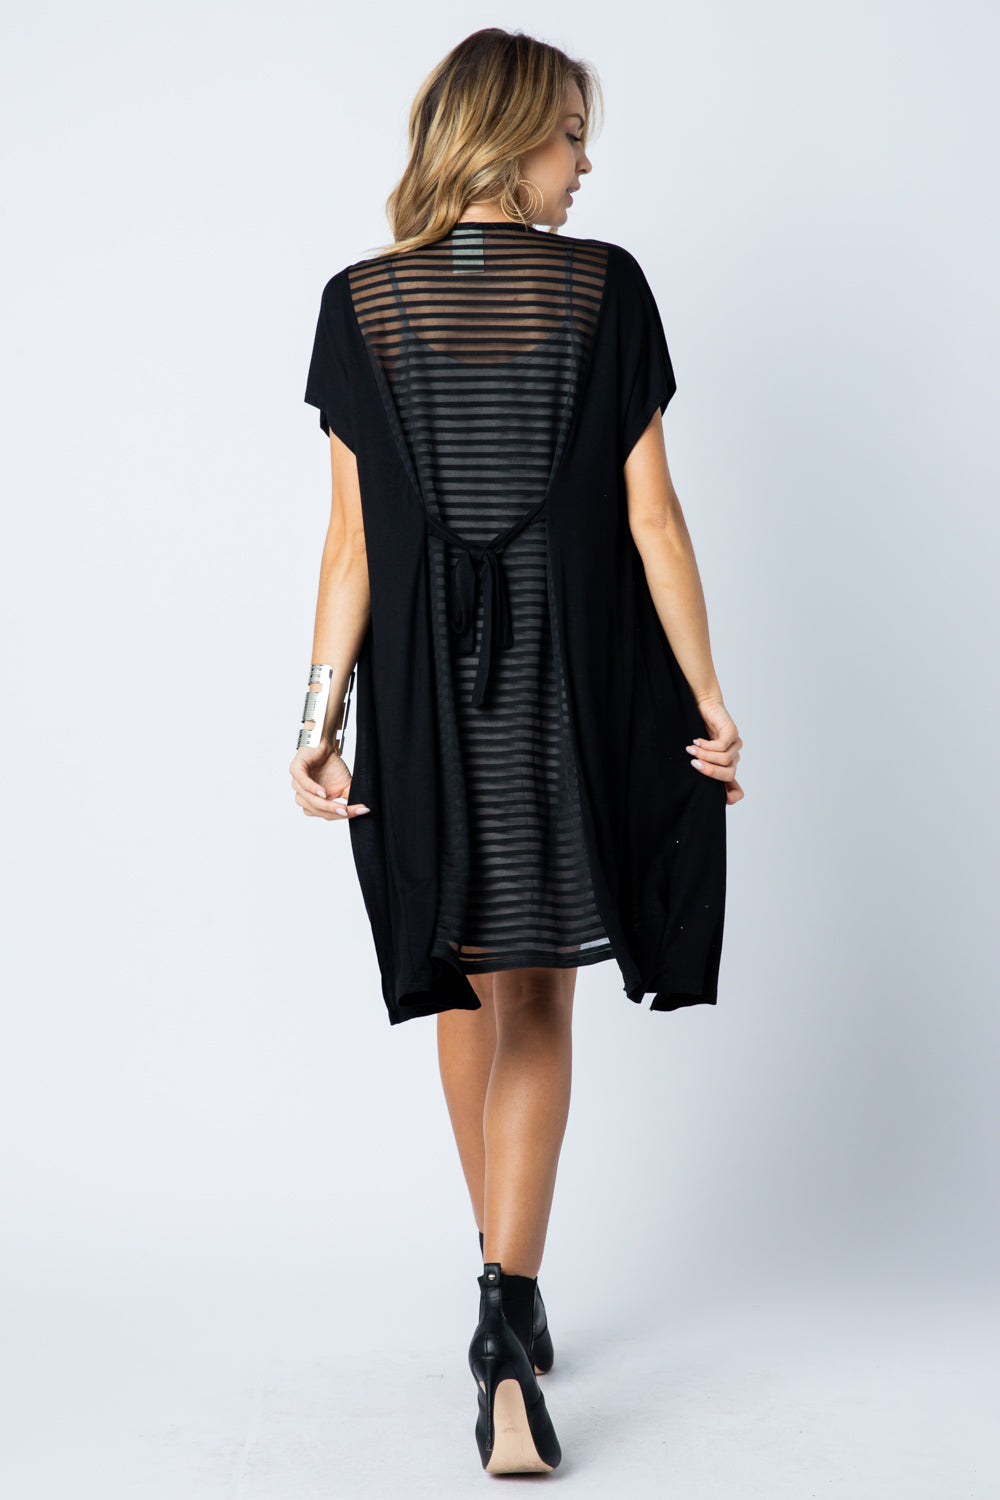 Cardigan Cap Sleeve Black